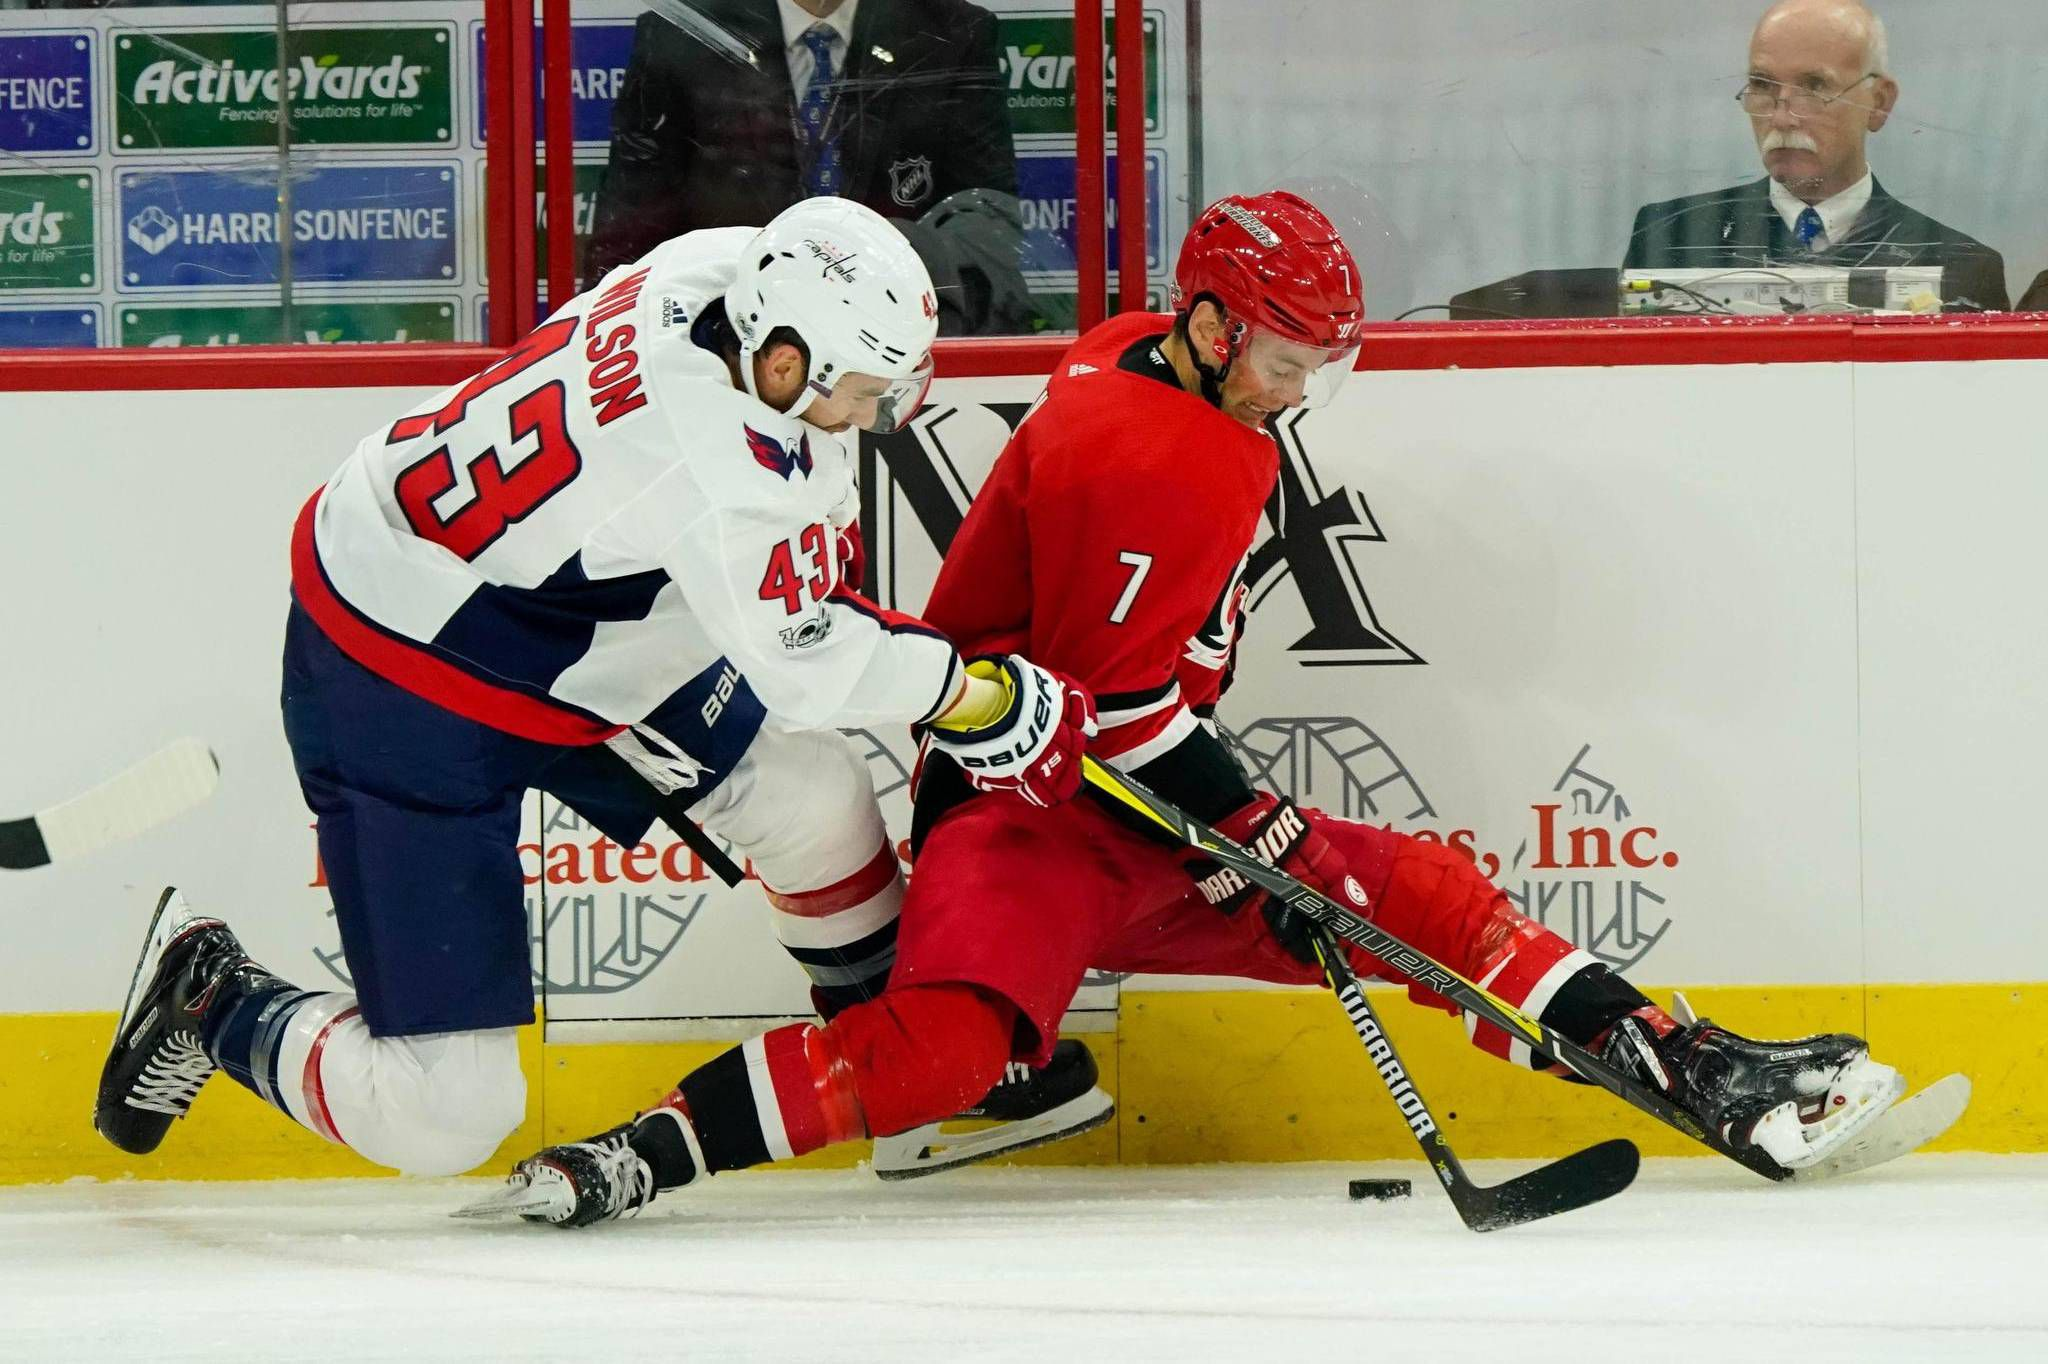 new concept f37da 48821 Capitals' Tom Wilson suspended four games for boarding - The ...